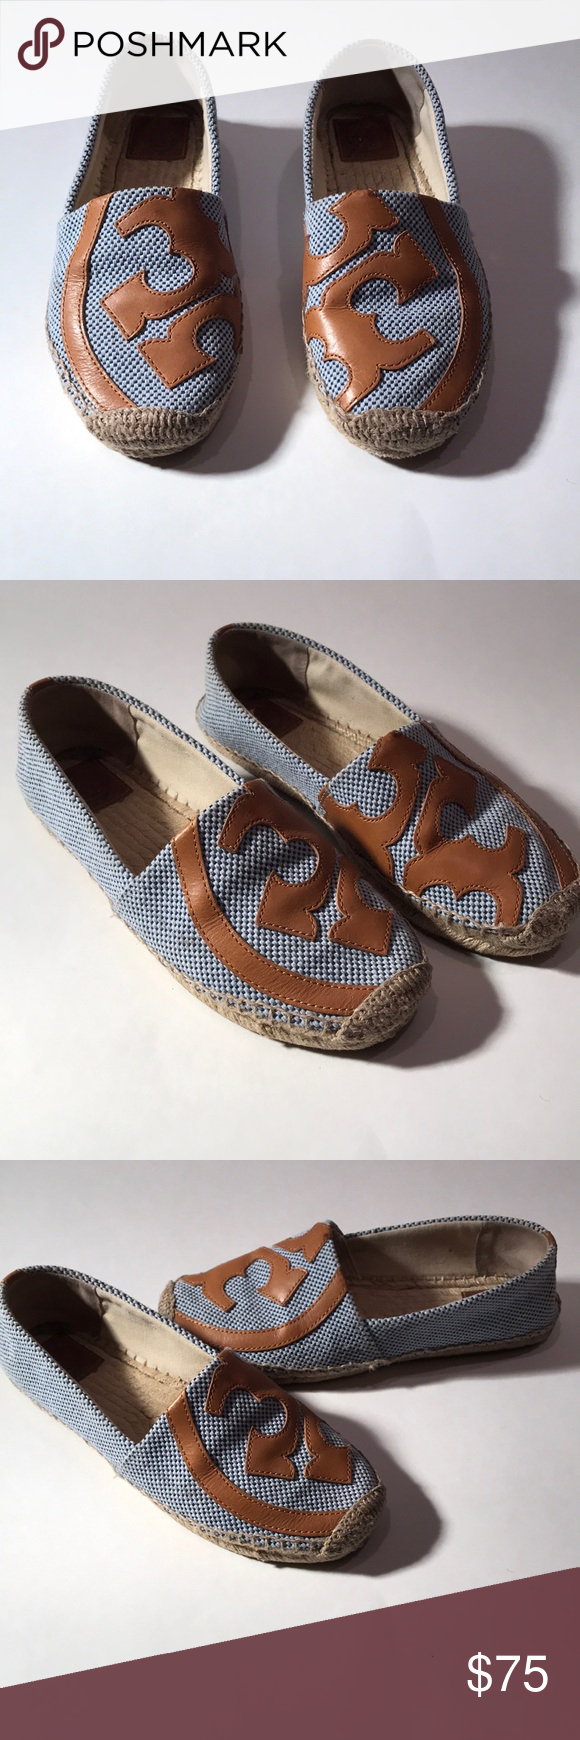 "114452a76 Tory Burch ""Lonnie"" Flat Logo Espadrille Two tone woven fabric upper in  blue Leather signature logo on front in contrast tan color Woven jute  midsole Canvas ..."